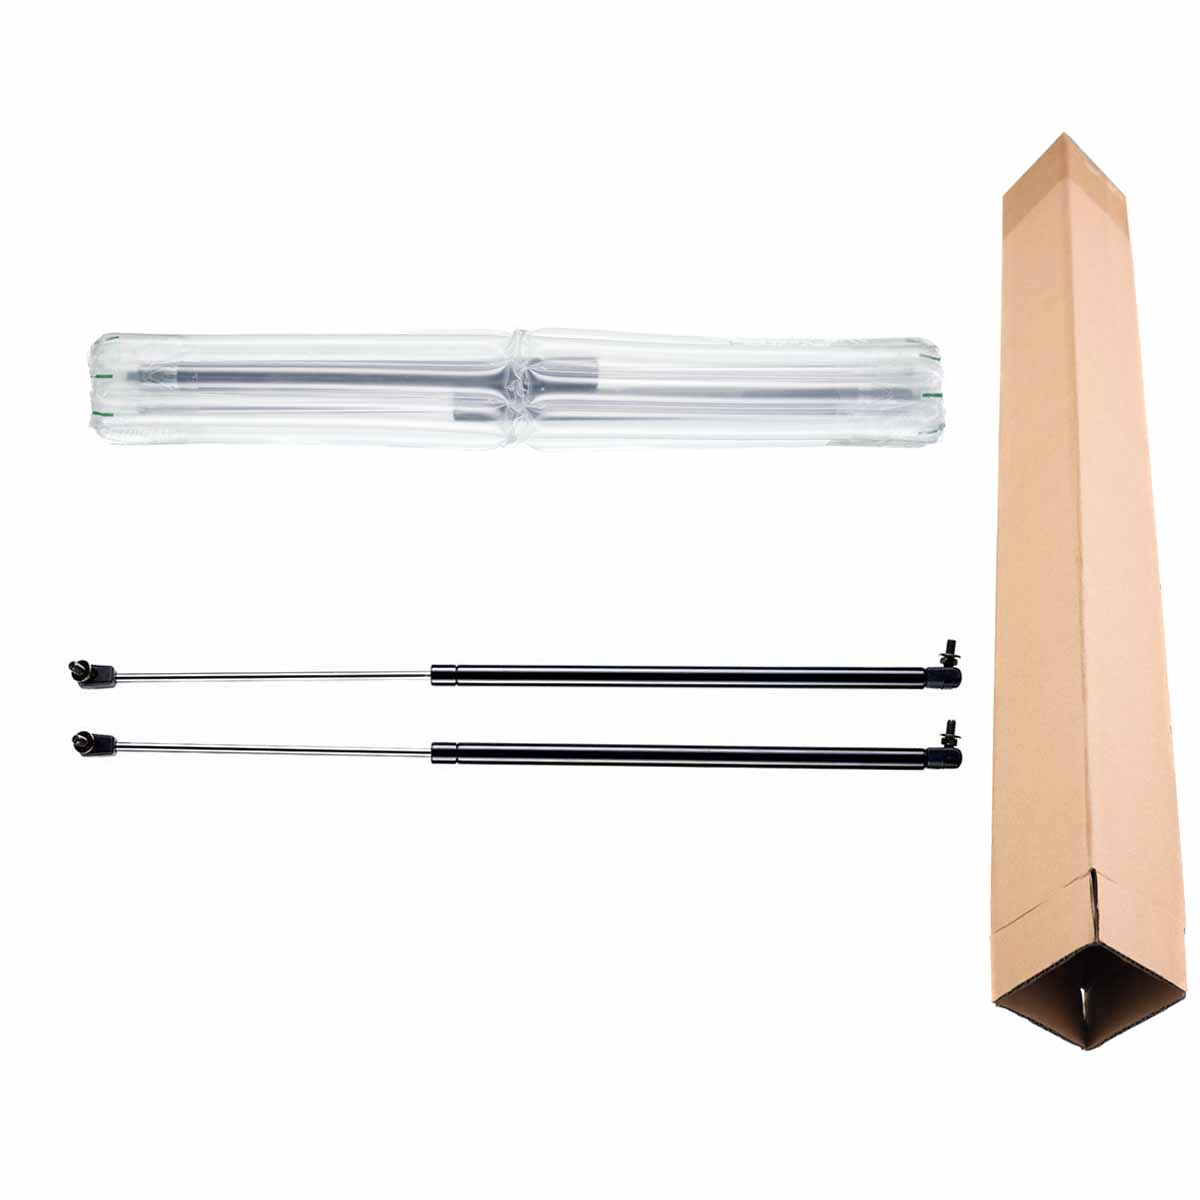 2x Rear Trunk Tailgate Lift Supports Shock Gas Struts For